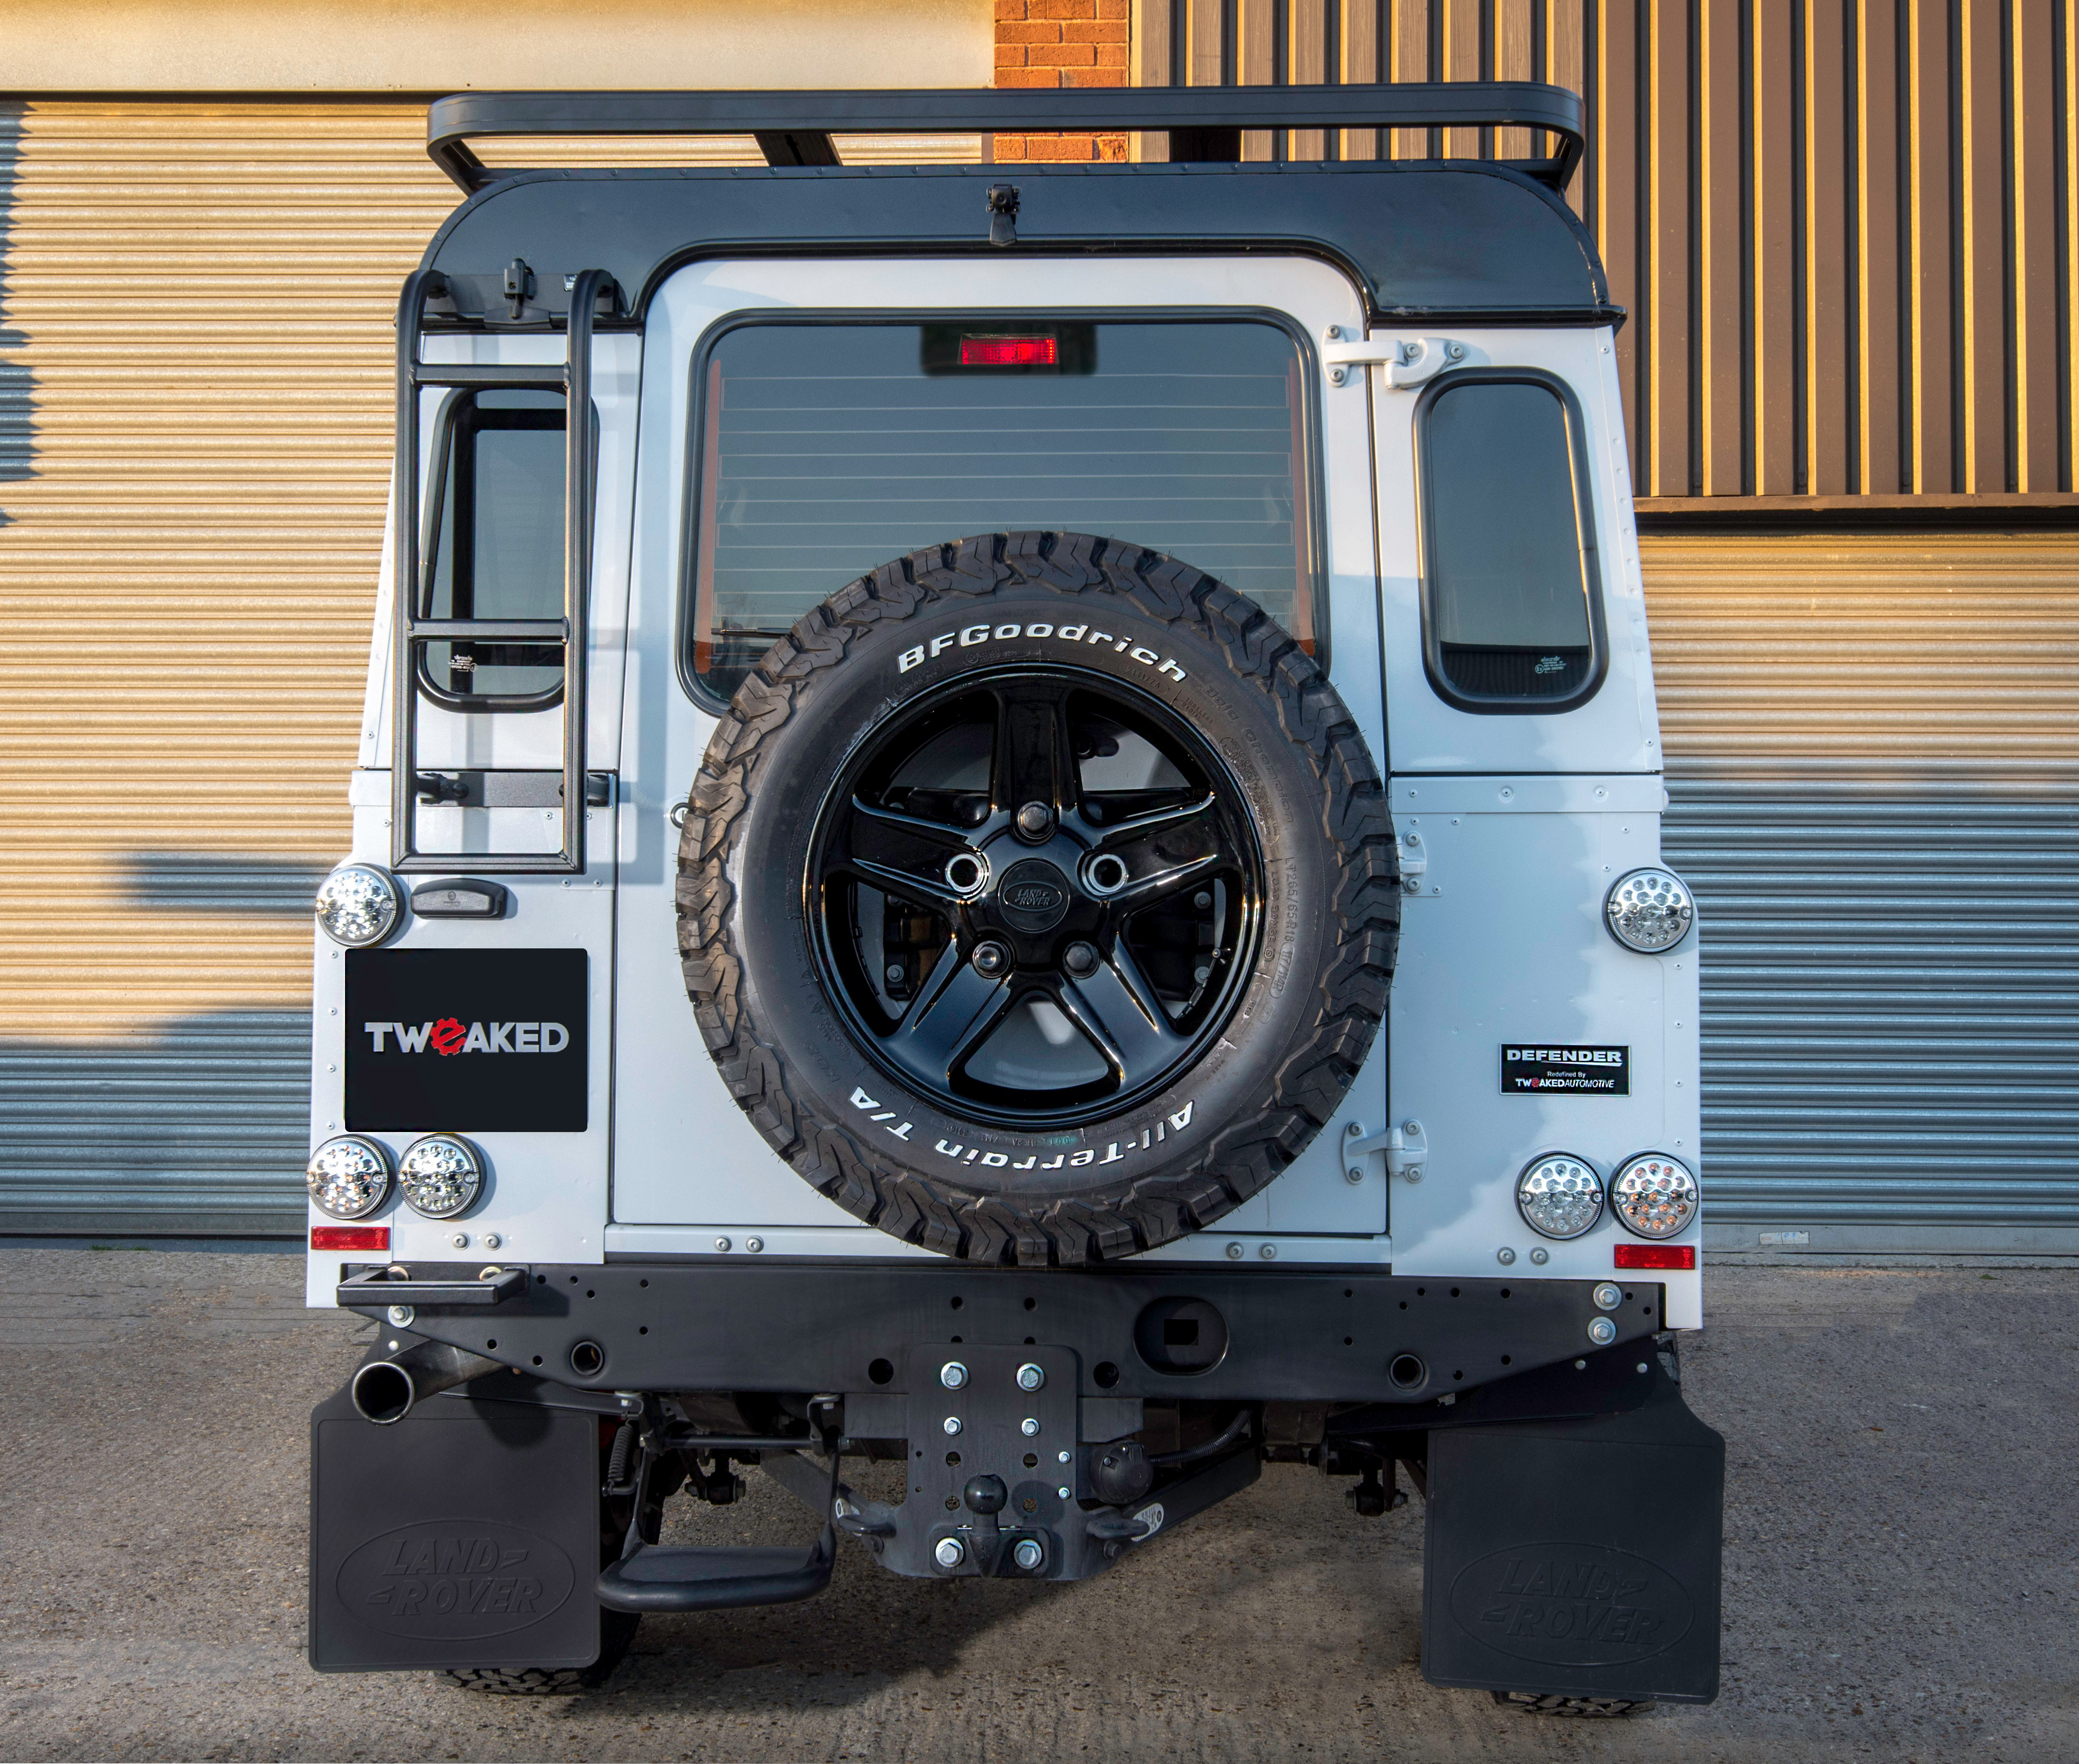 Land Rover Defender 110 Tweaked Expedition Edition